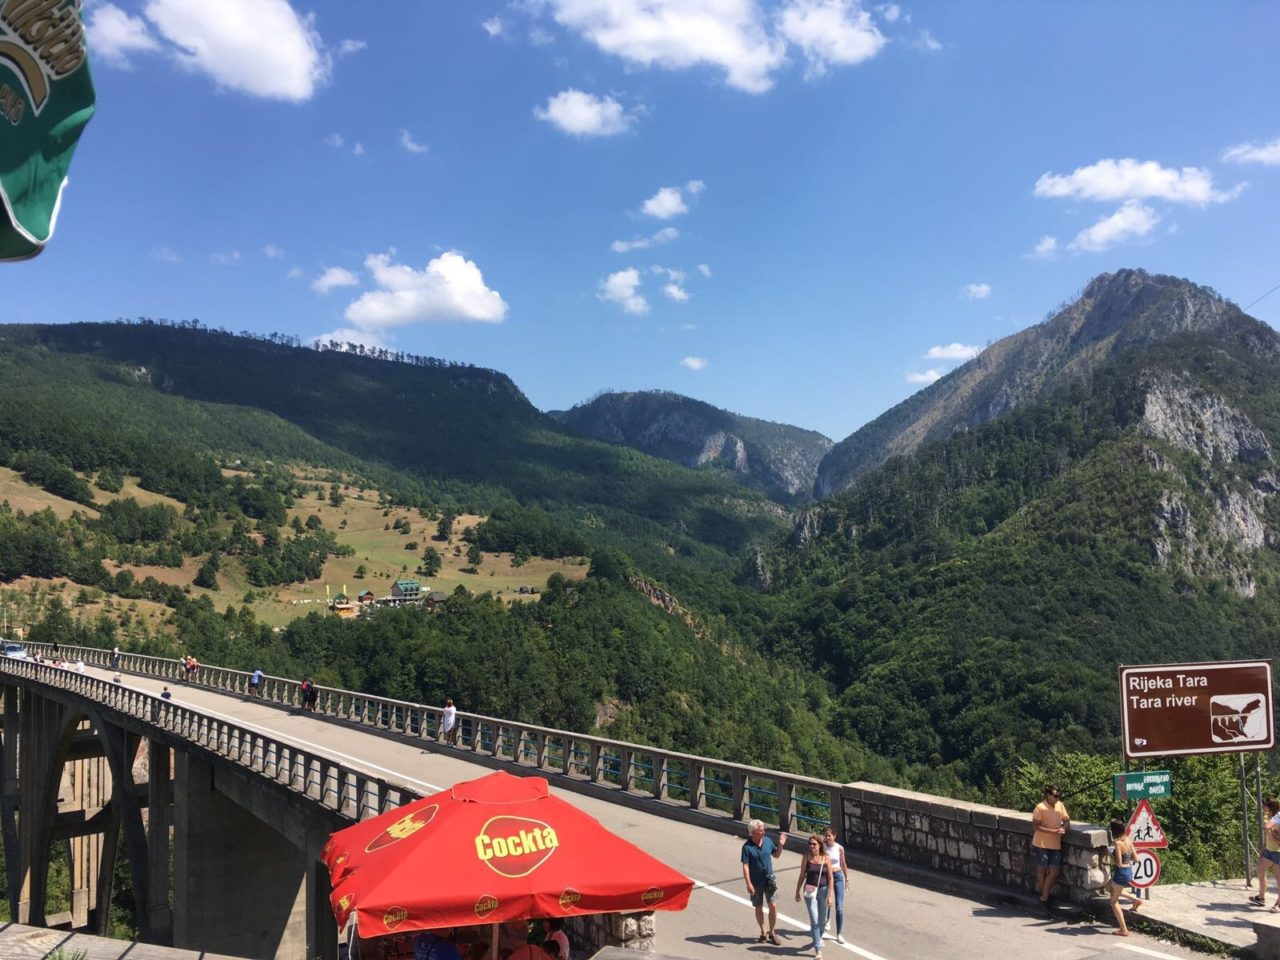 Bridge Over The River Tara In Montenegro With Mountains In The Background